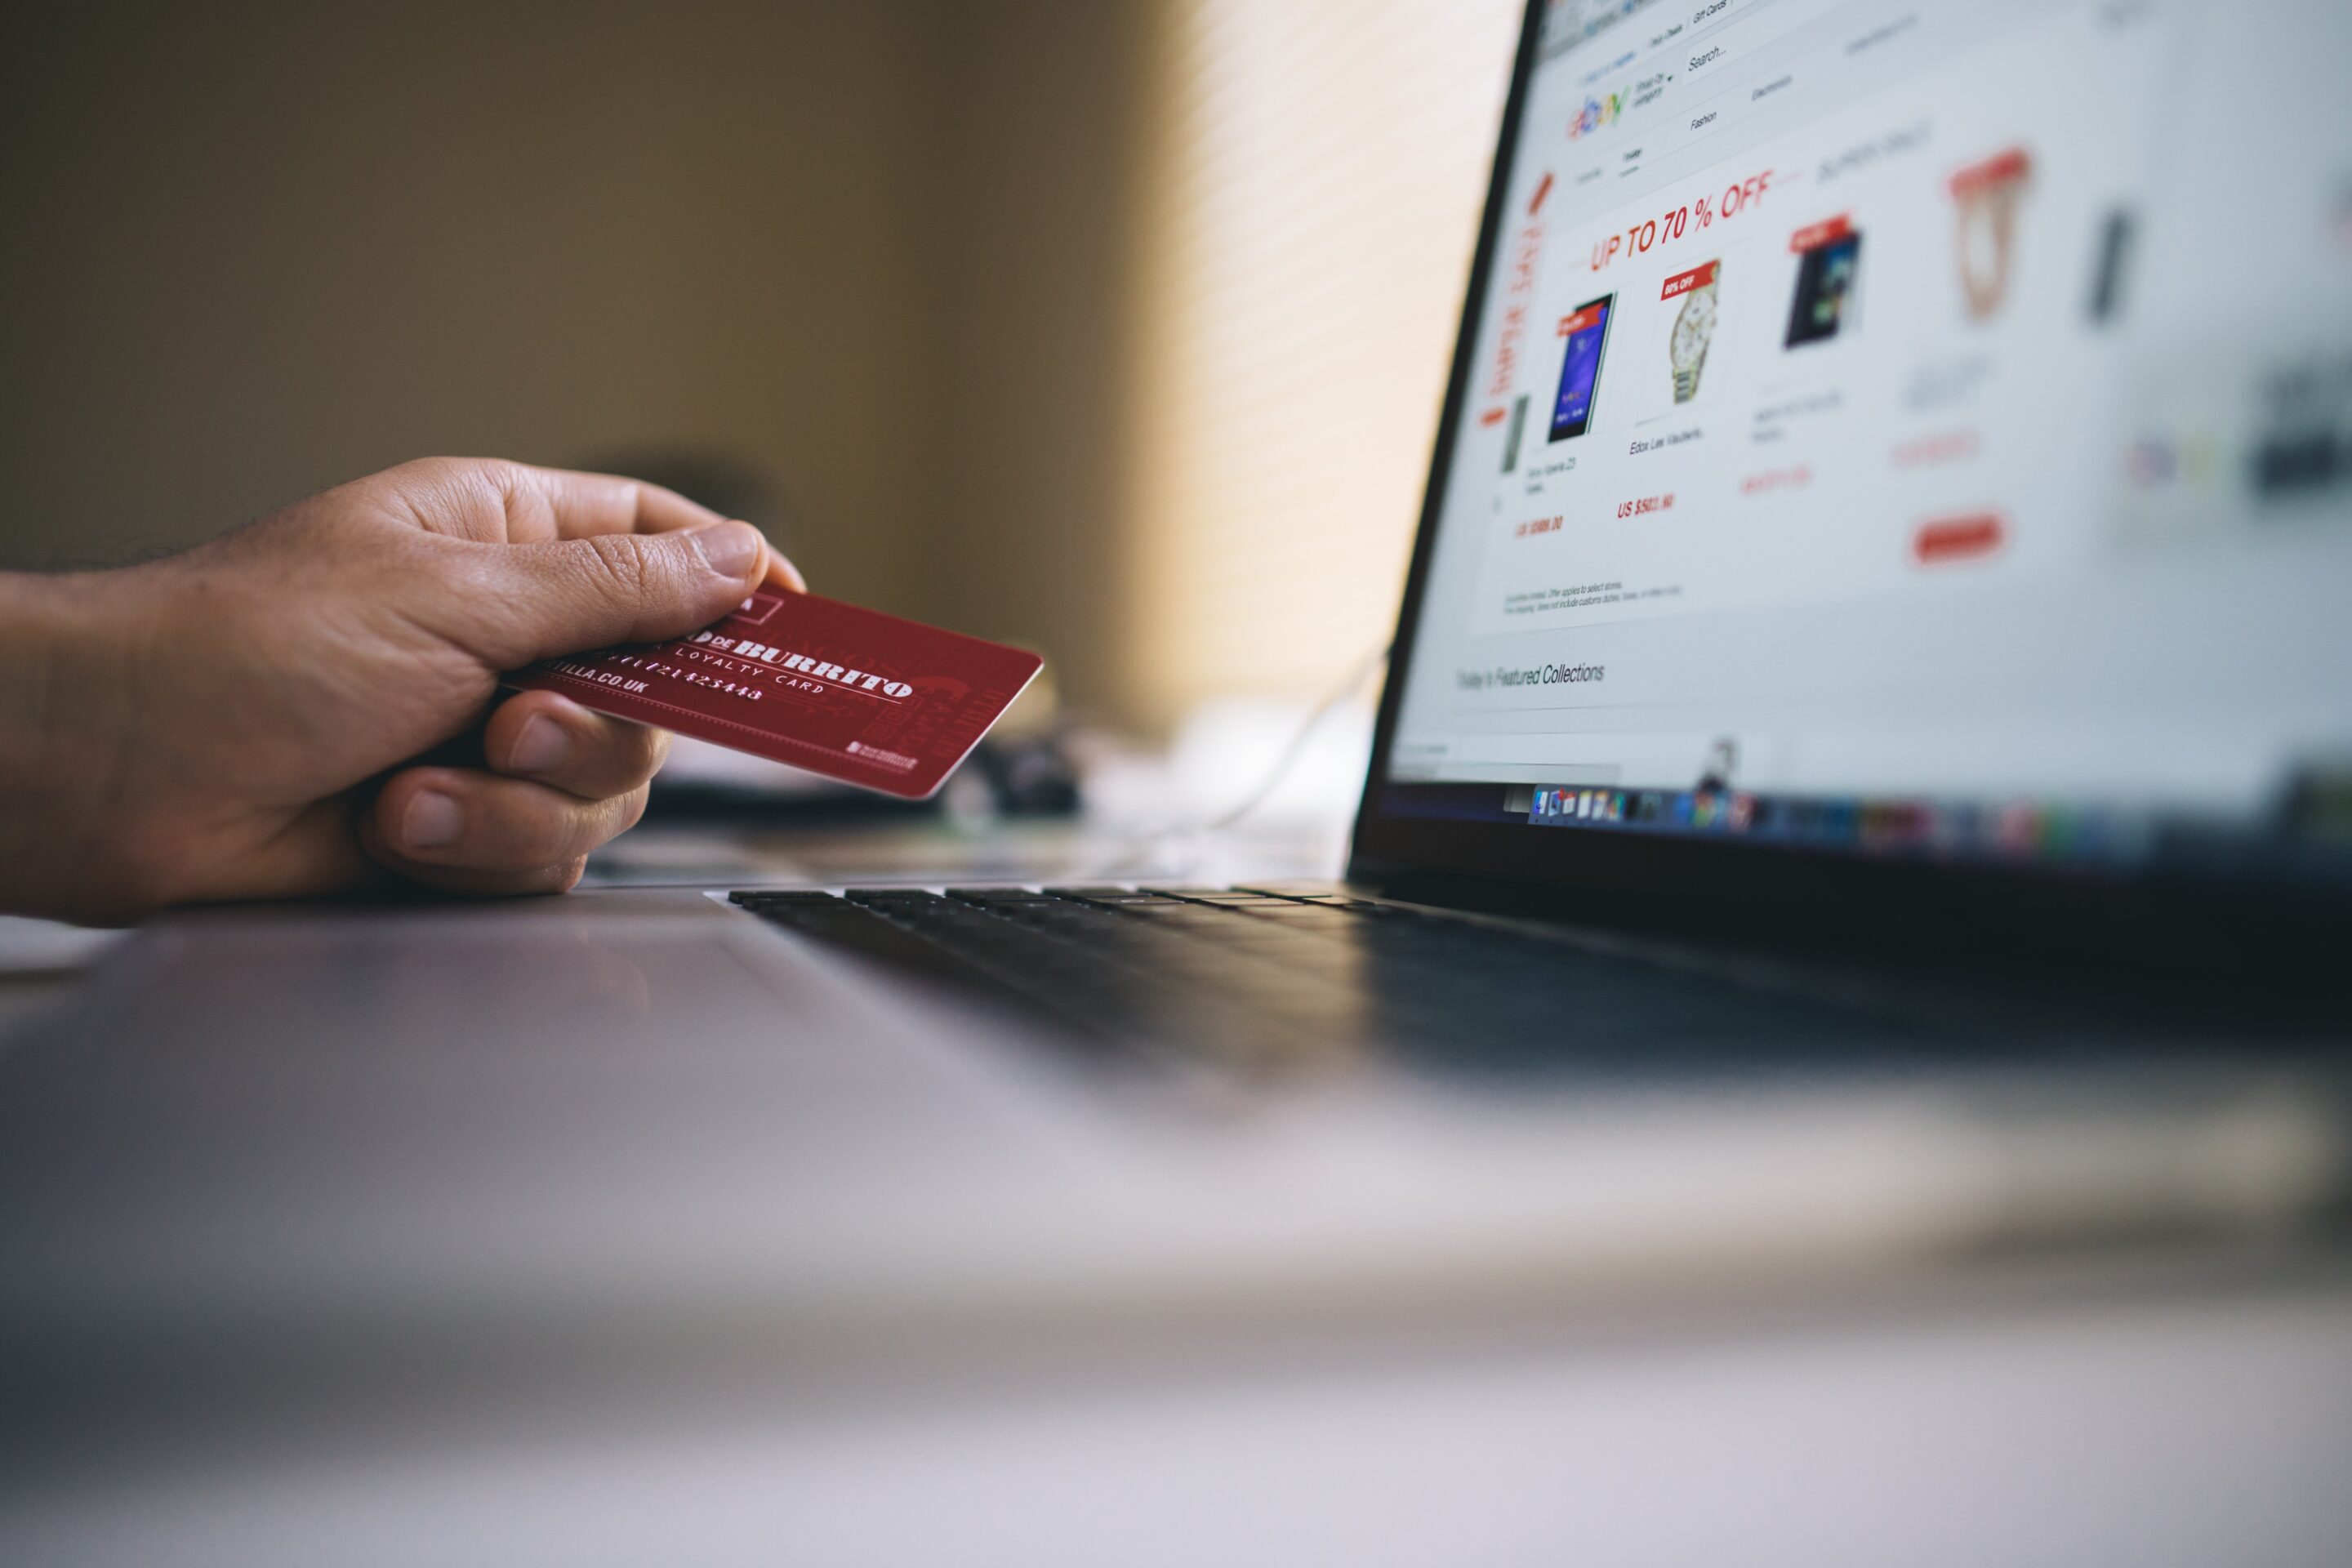 vyberomat sk online shopping